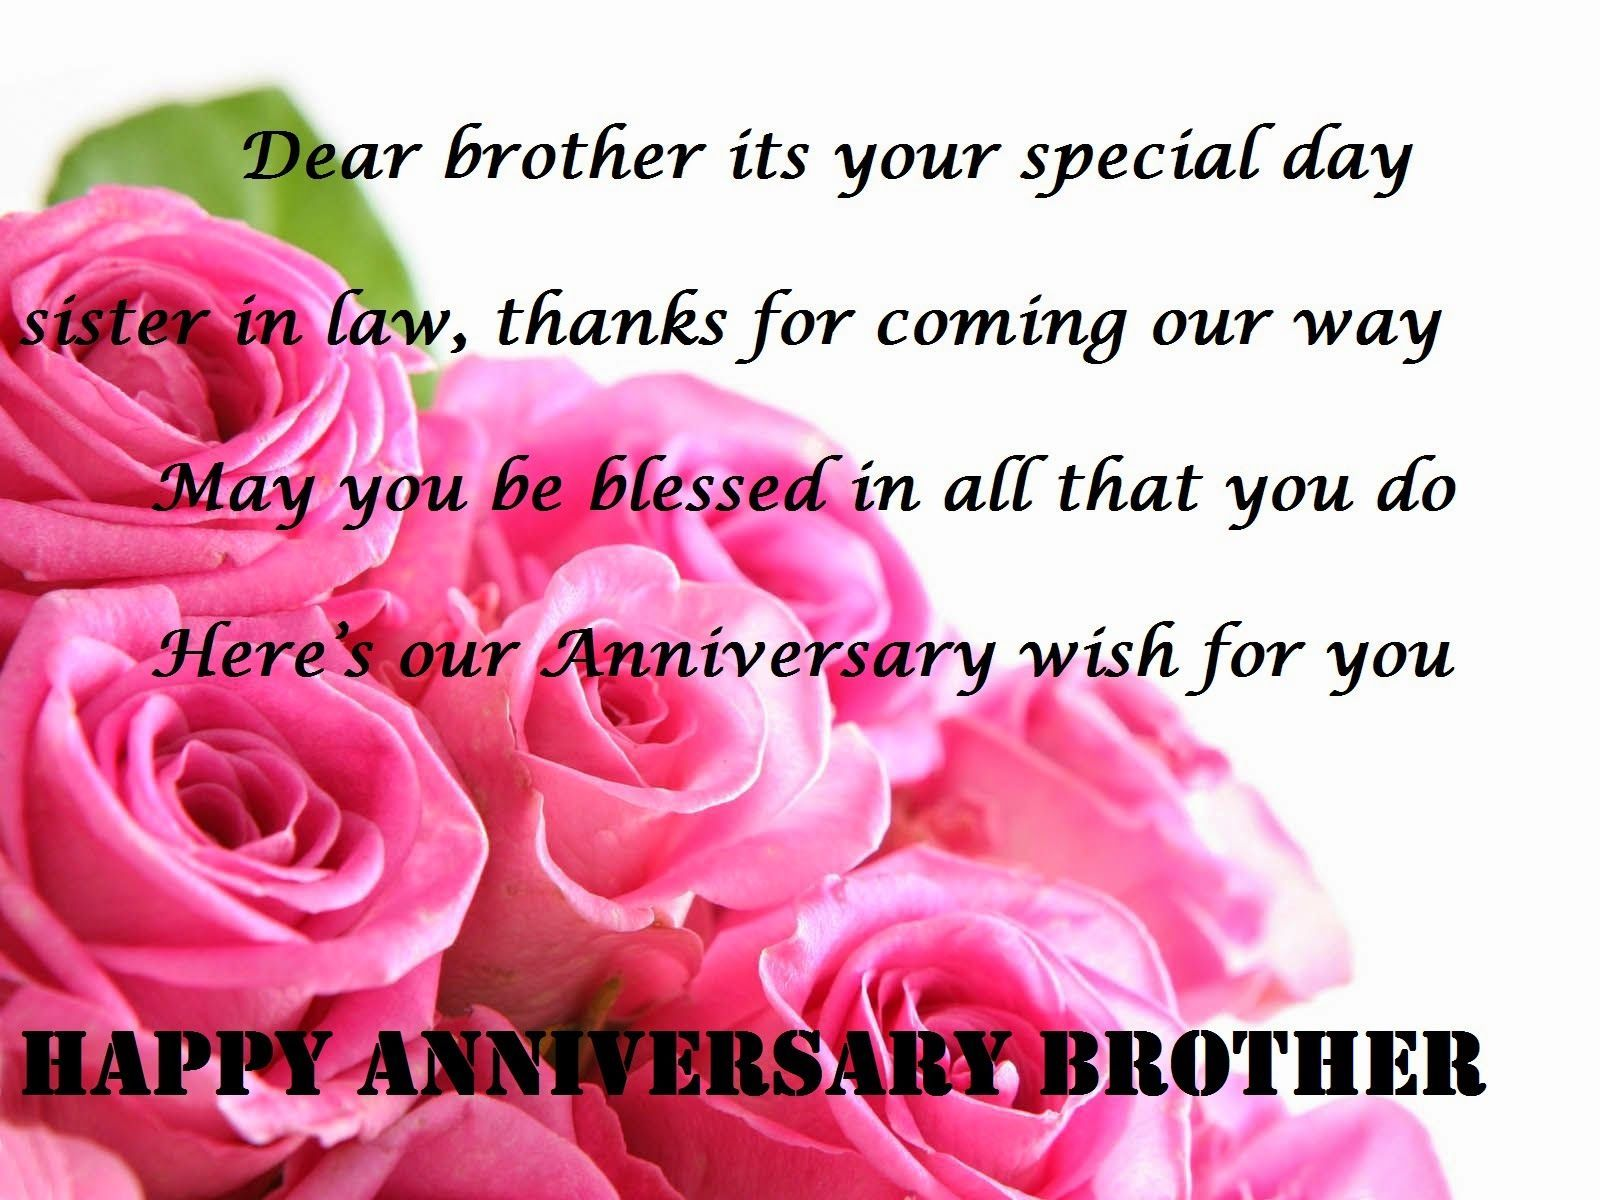 Wedding Anniversary Gifts For Brother And Sister In Law In 2020 Anniversary Wishes For Sister Happy Wedding Anniversary Wishes Happy Anniversary Wishes